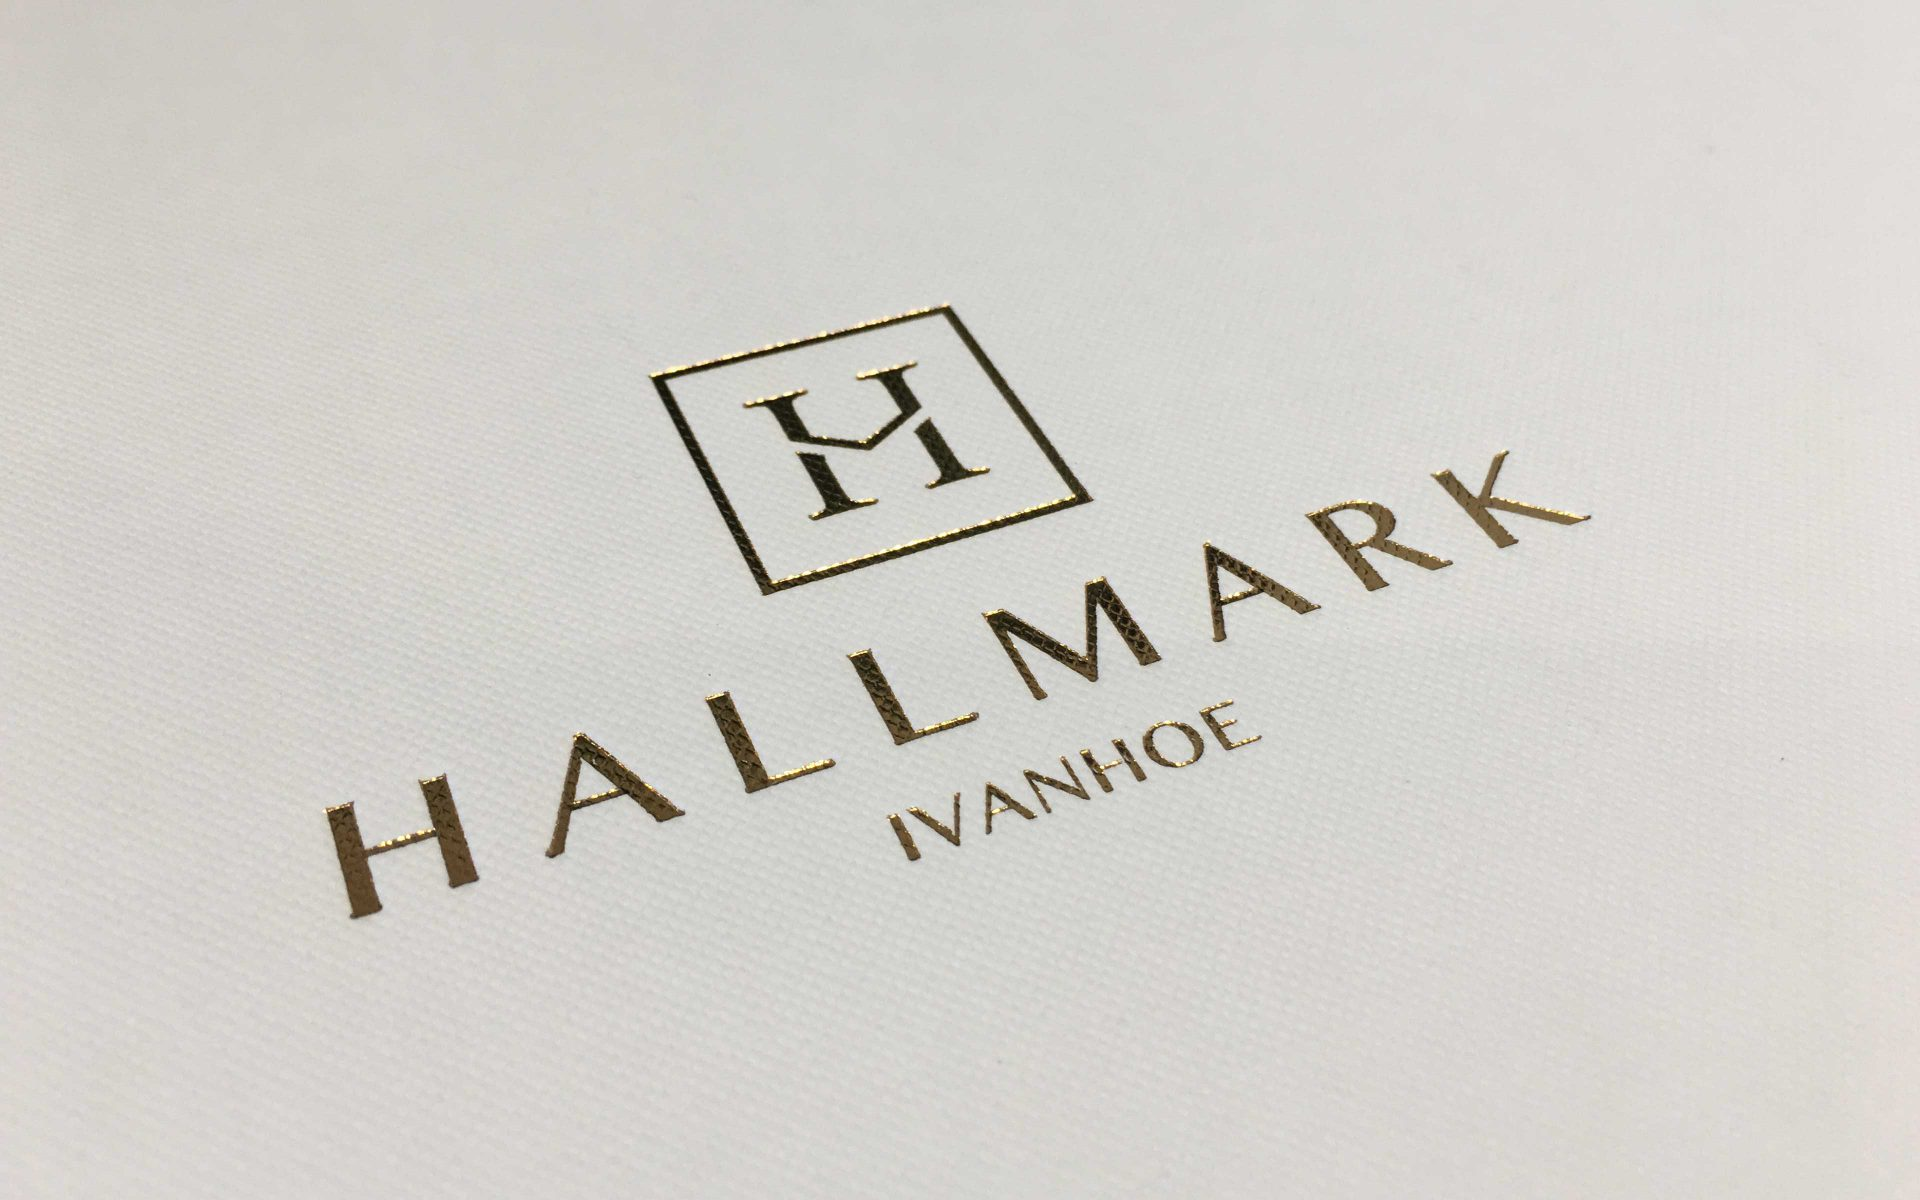 Hallmark gold embossed logo on white cardboard by Differ